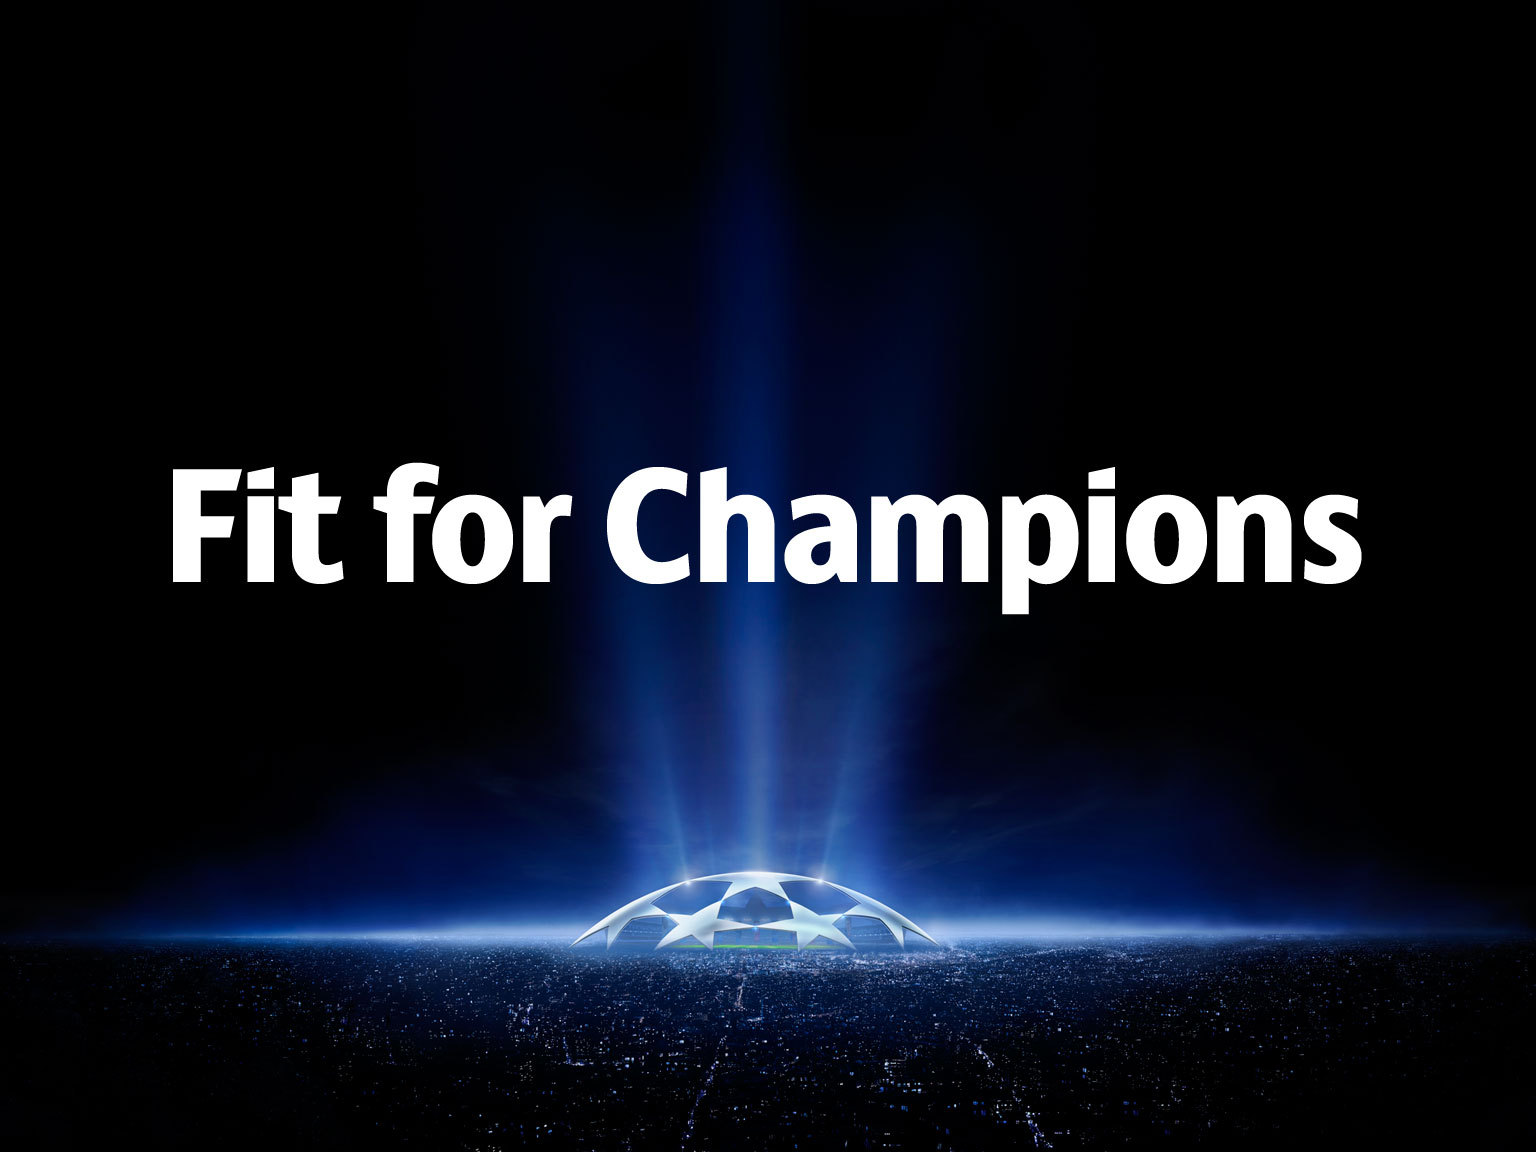 Champions Bold - Befonts com